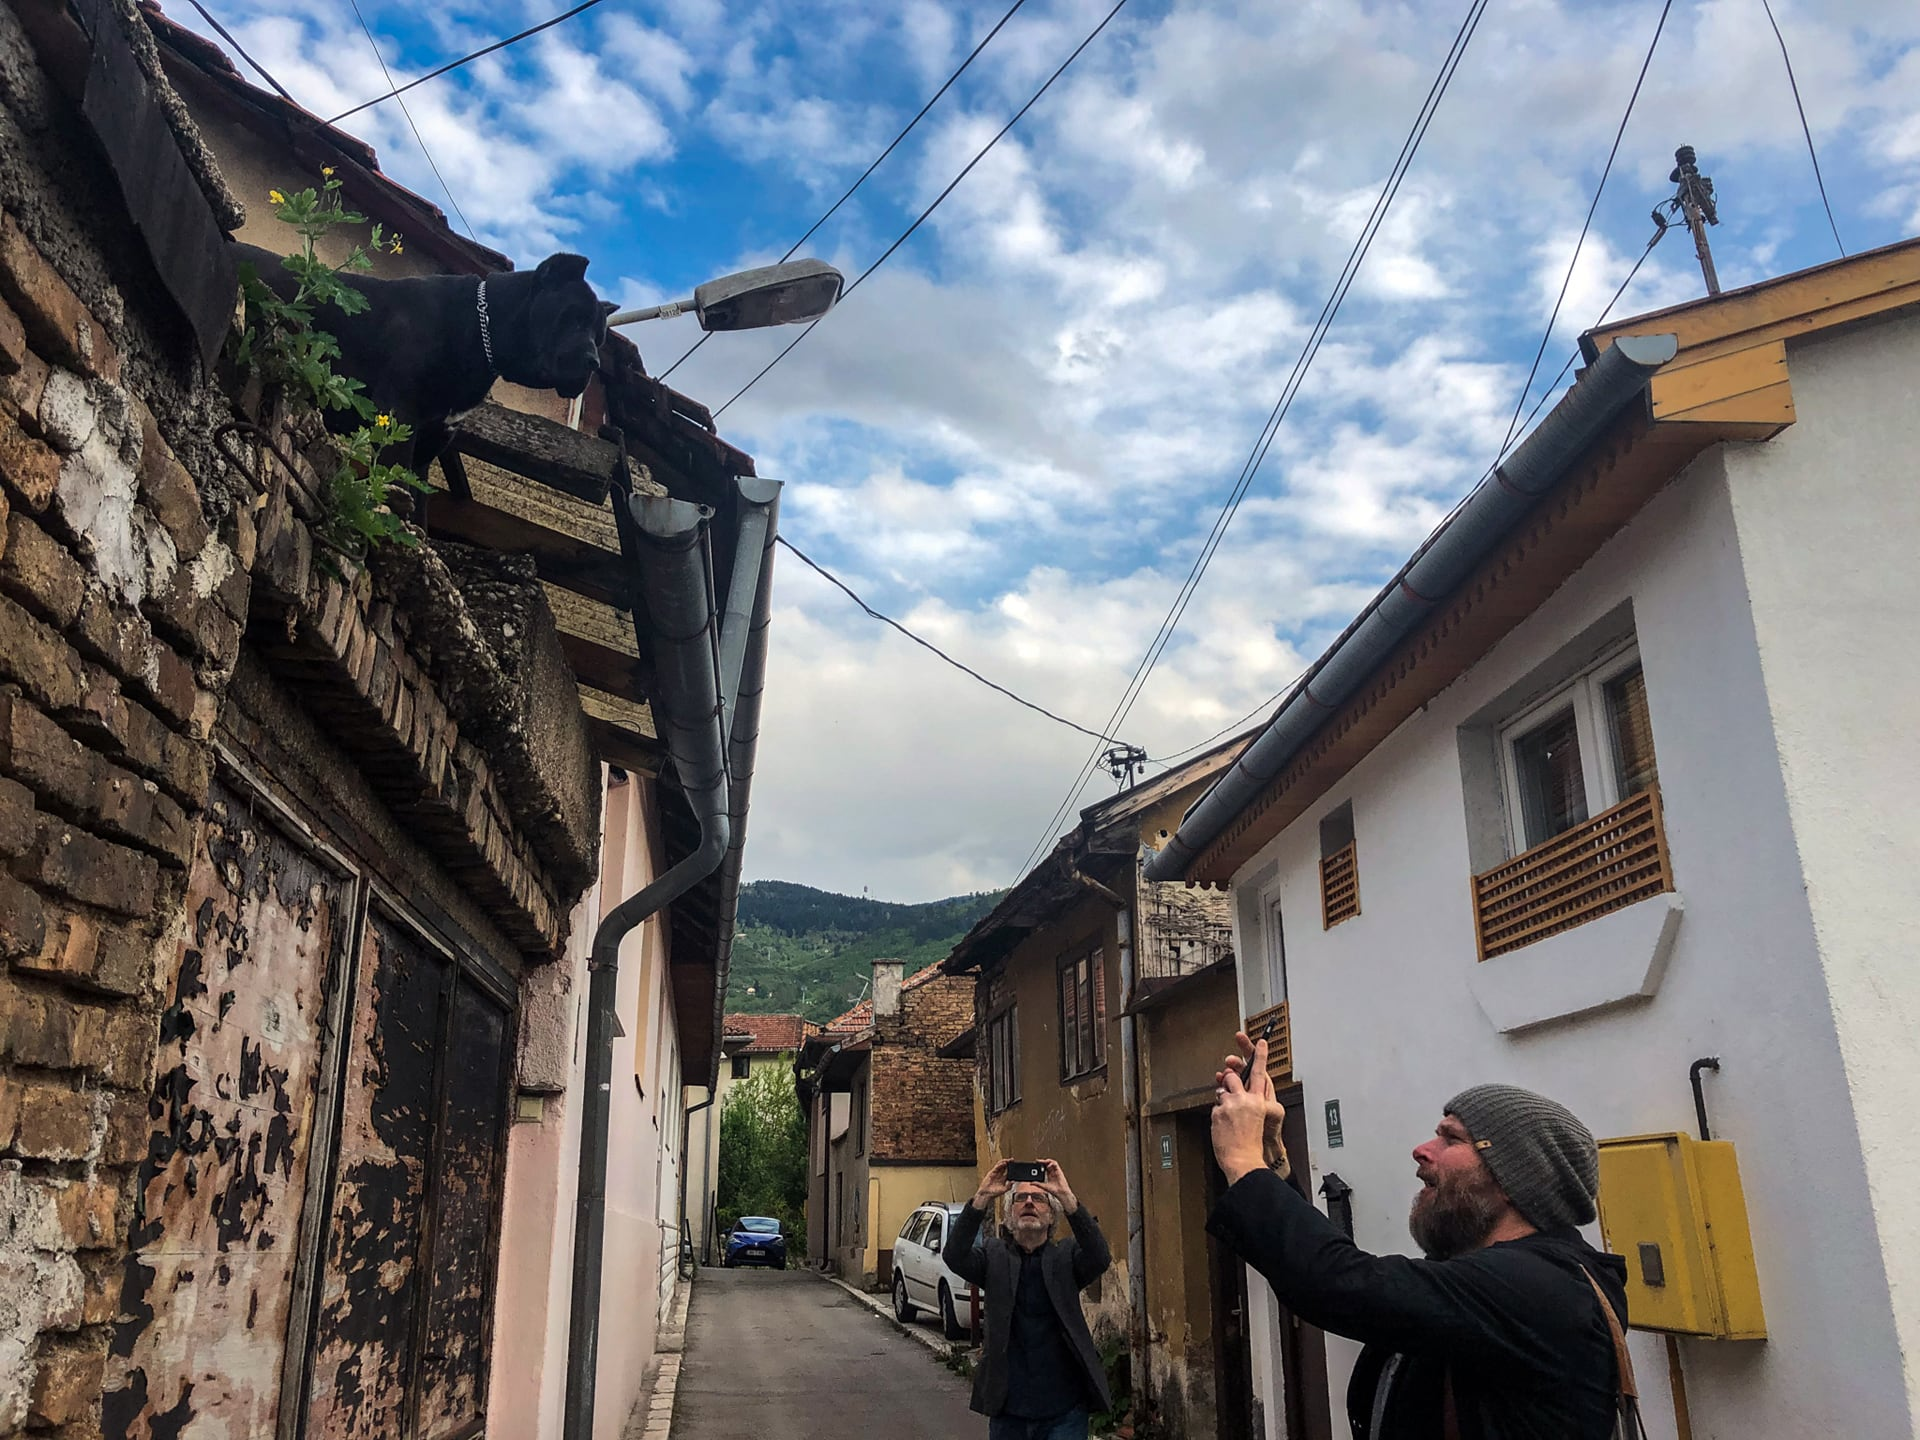 VII Photo Agency's Danny Wilcox Frazier (right) and Seamus Murphy explore the old town of Sarajevo. ©Nichole Sobecki / VII